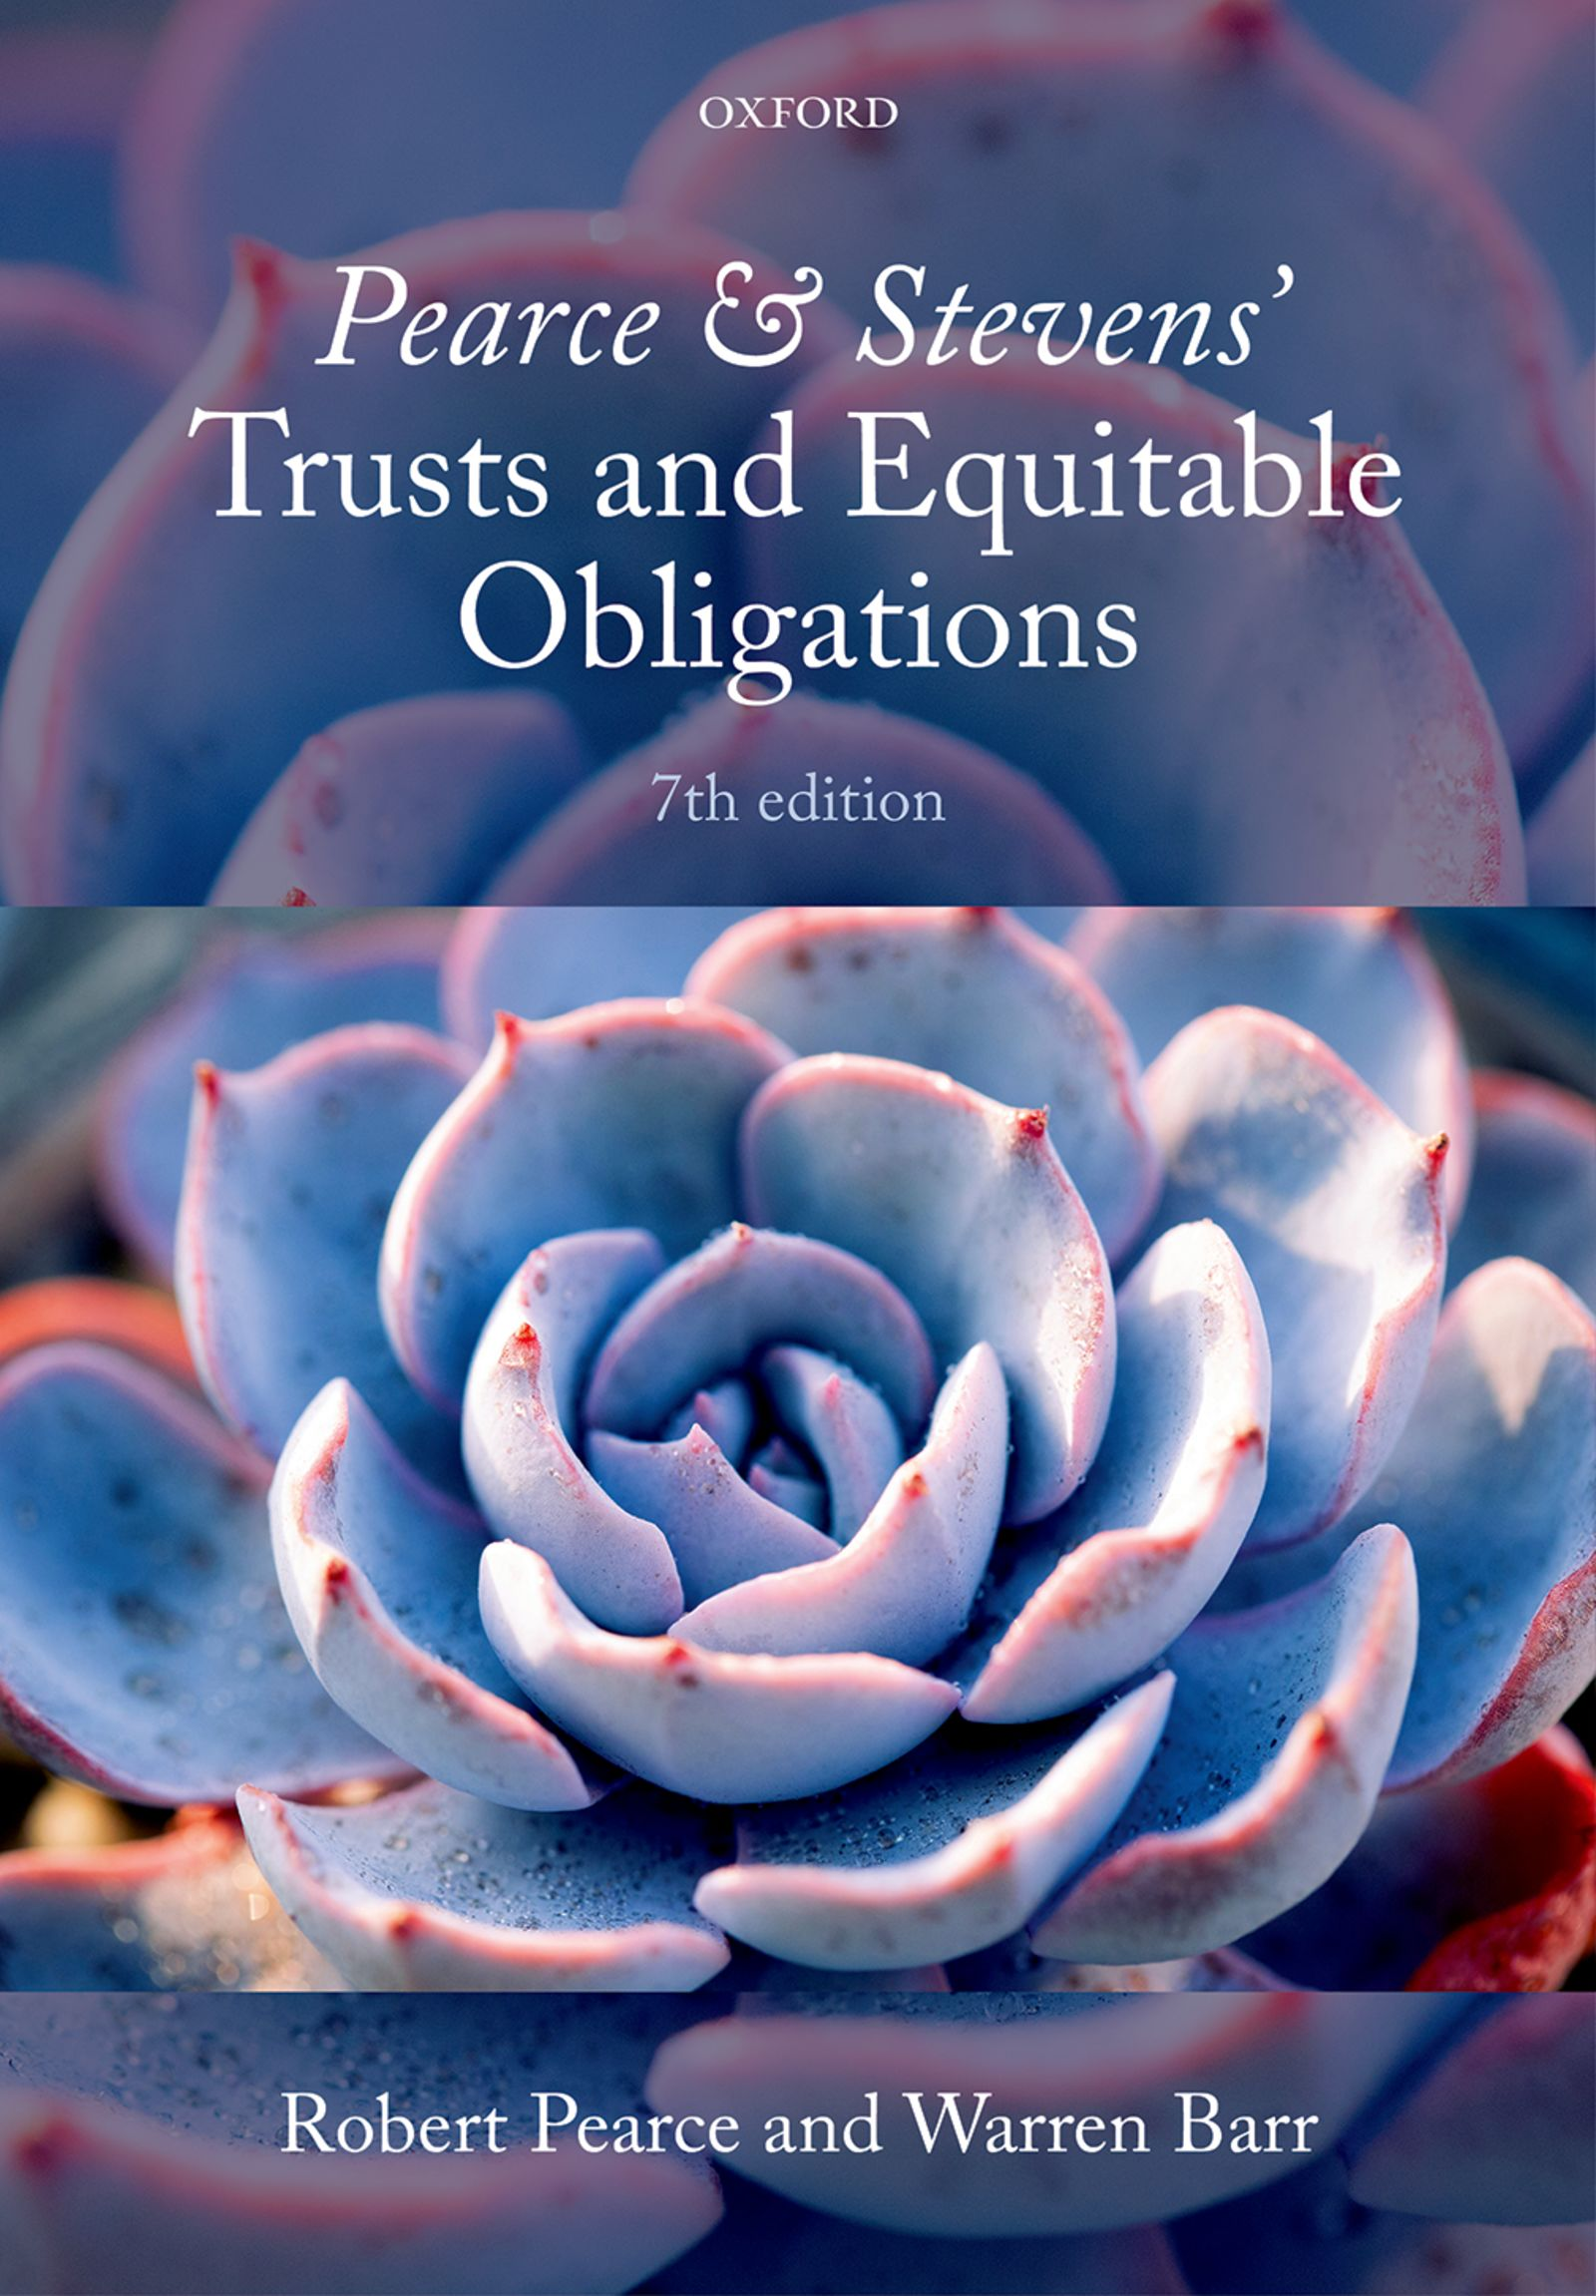 Pearce & Stevens' Trusts and Equitable Obligations 7e Lecturer resources